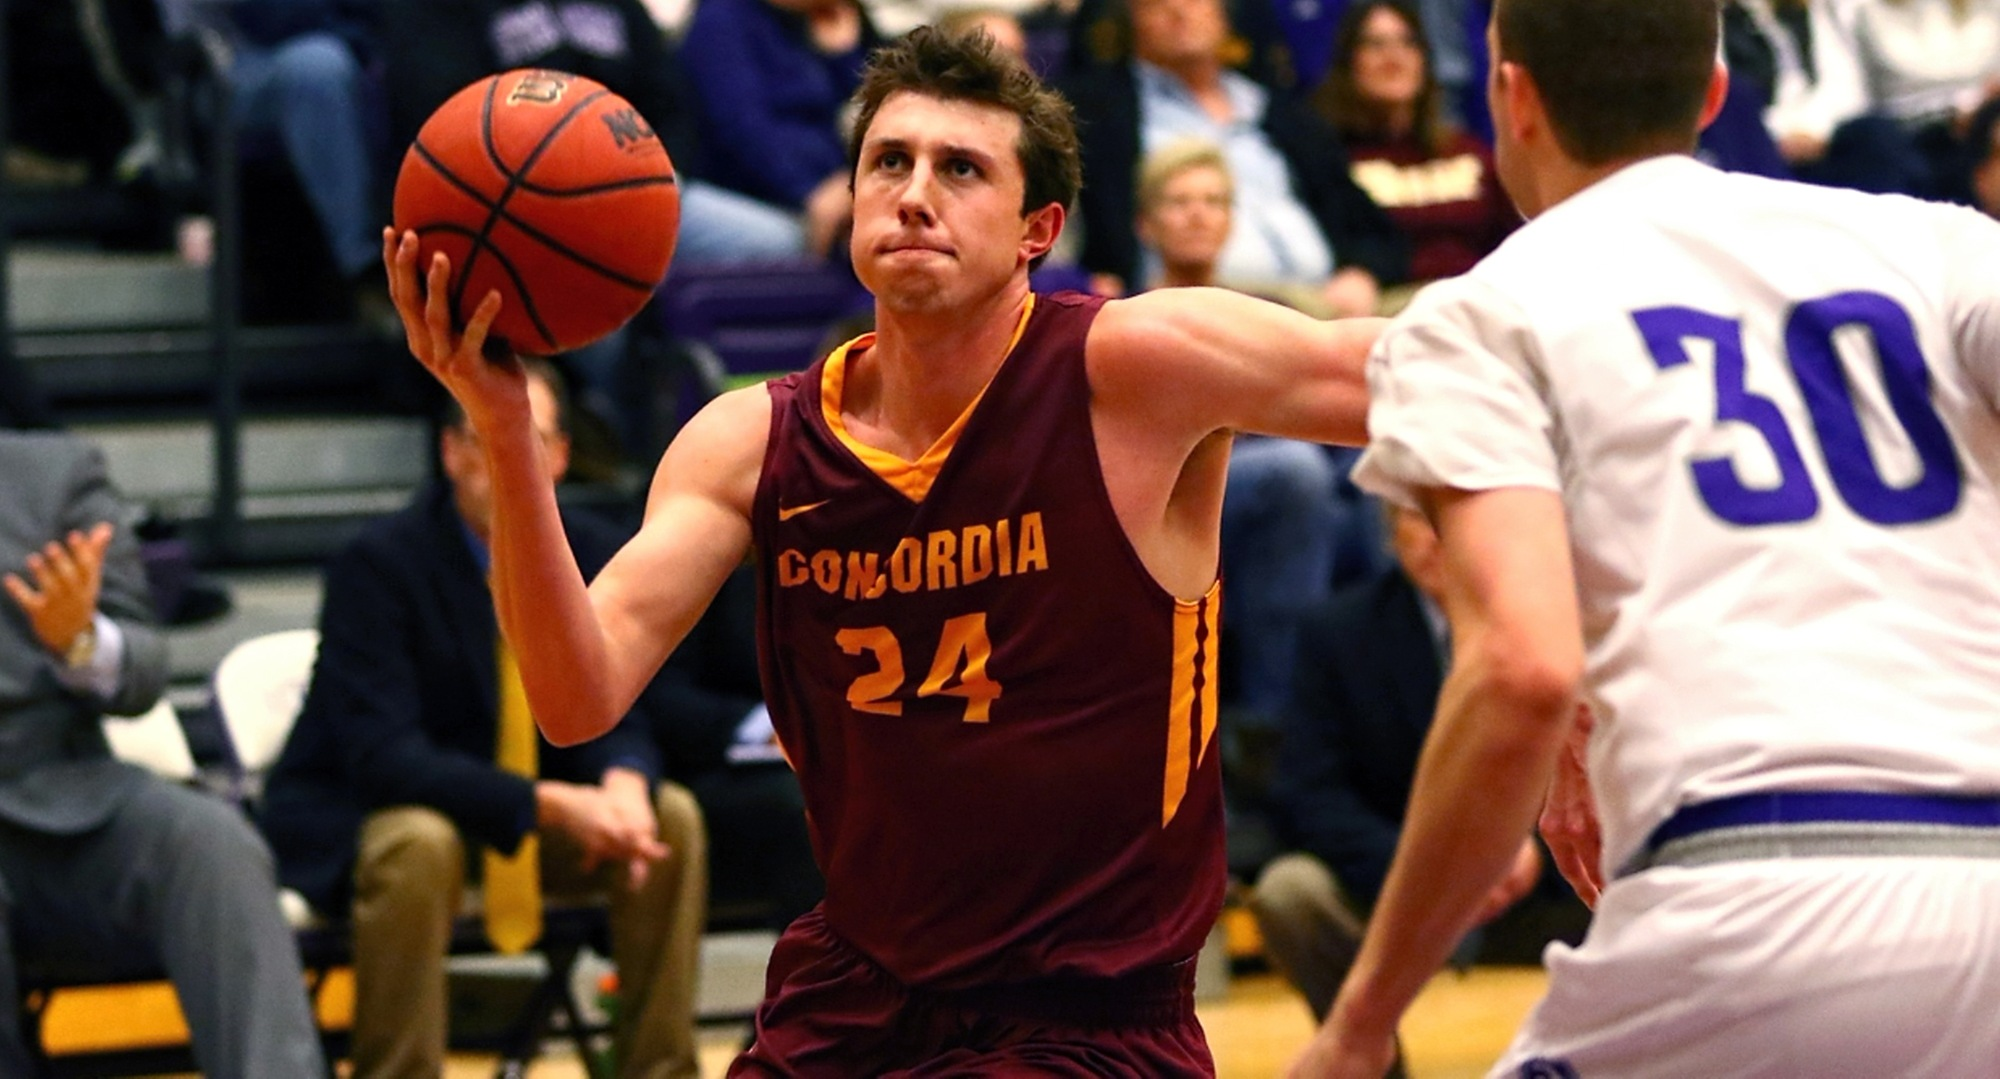 Senior Austin Nelson drives to the basket for two of his team-high 13 points in the Cobbers' game at St. Thomas (Photo courtesy of Ryan Coleman, d3photography.com)